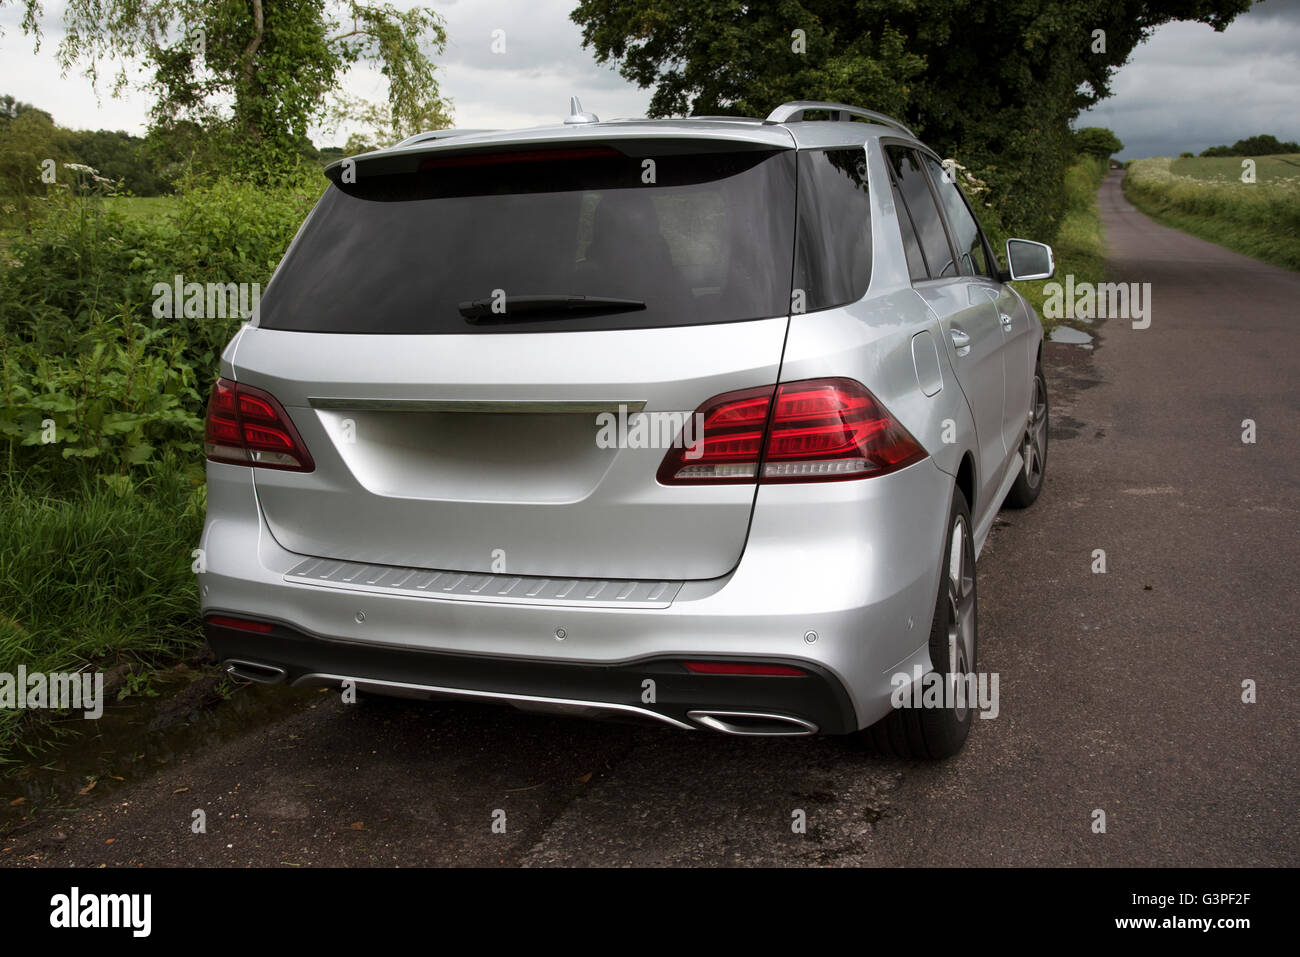 Rear View Of Car Uk Stock Photos Amp Rear View Of Car Uk Stock Images Alamy